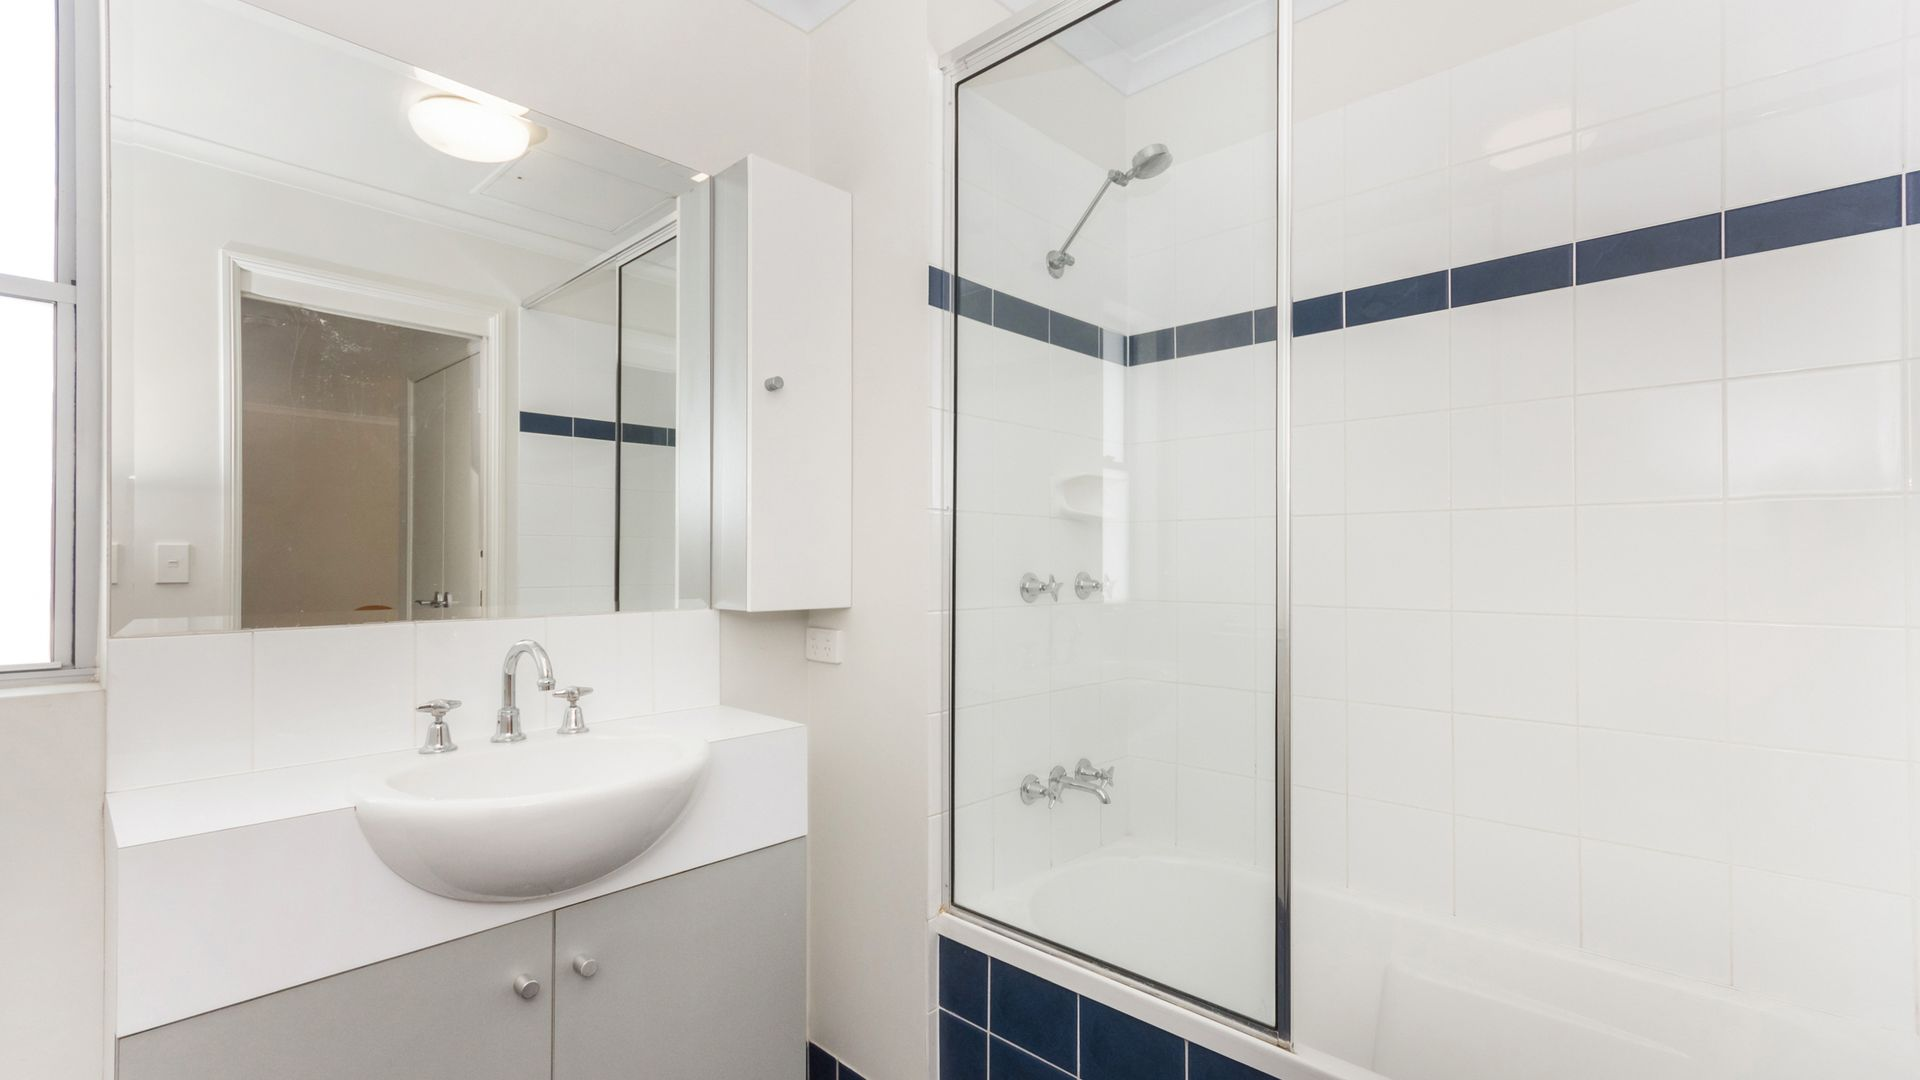 13/51-69 Stanley Street, Townsville City QLD 4810, Image 5